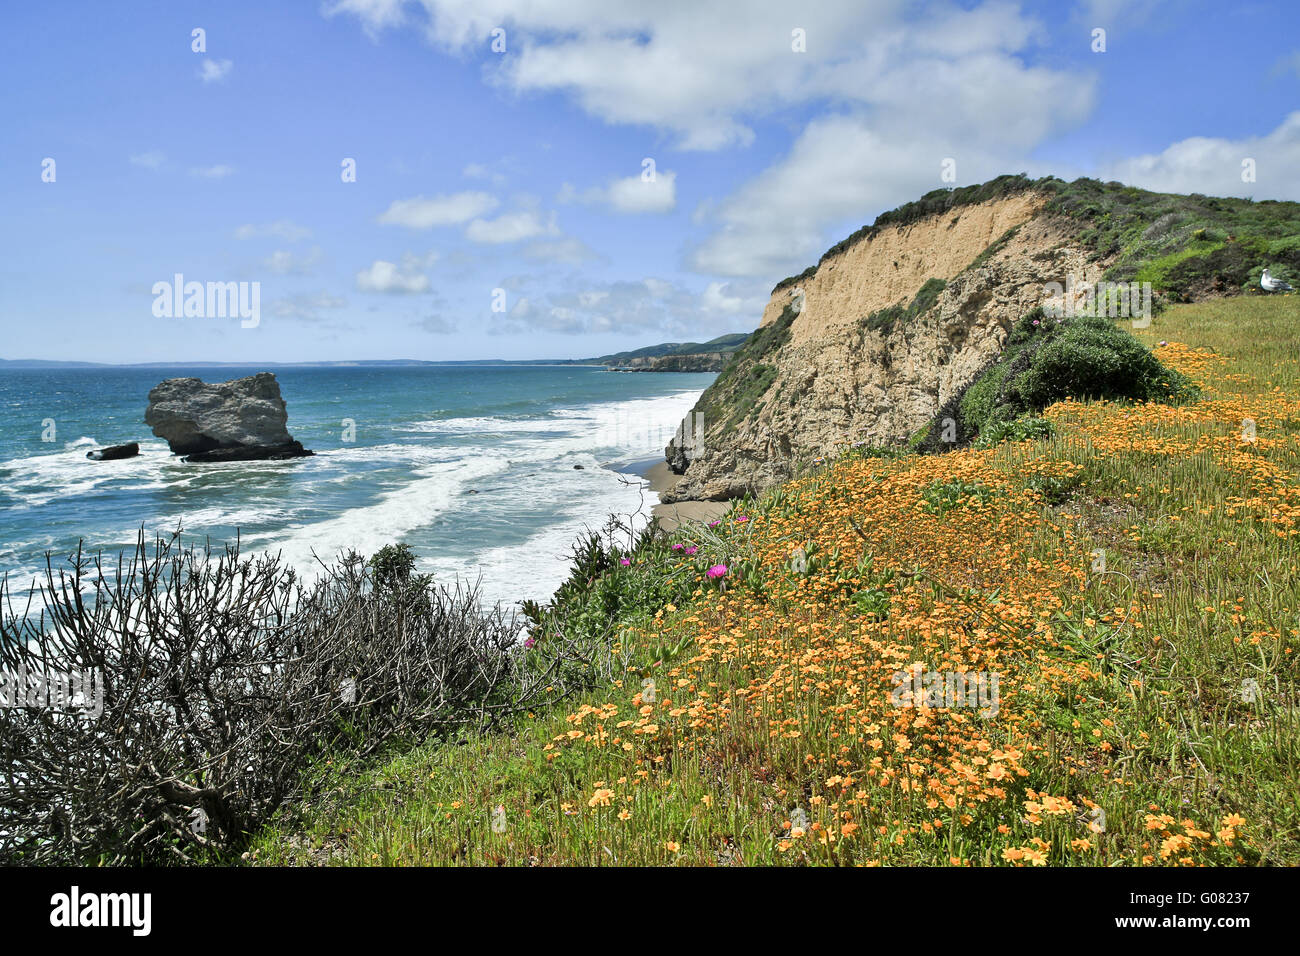 Pacific Coastline near Arch Rock/Bear Valley trail in Point Reyes National Seashore - Stock Image